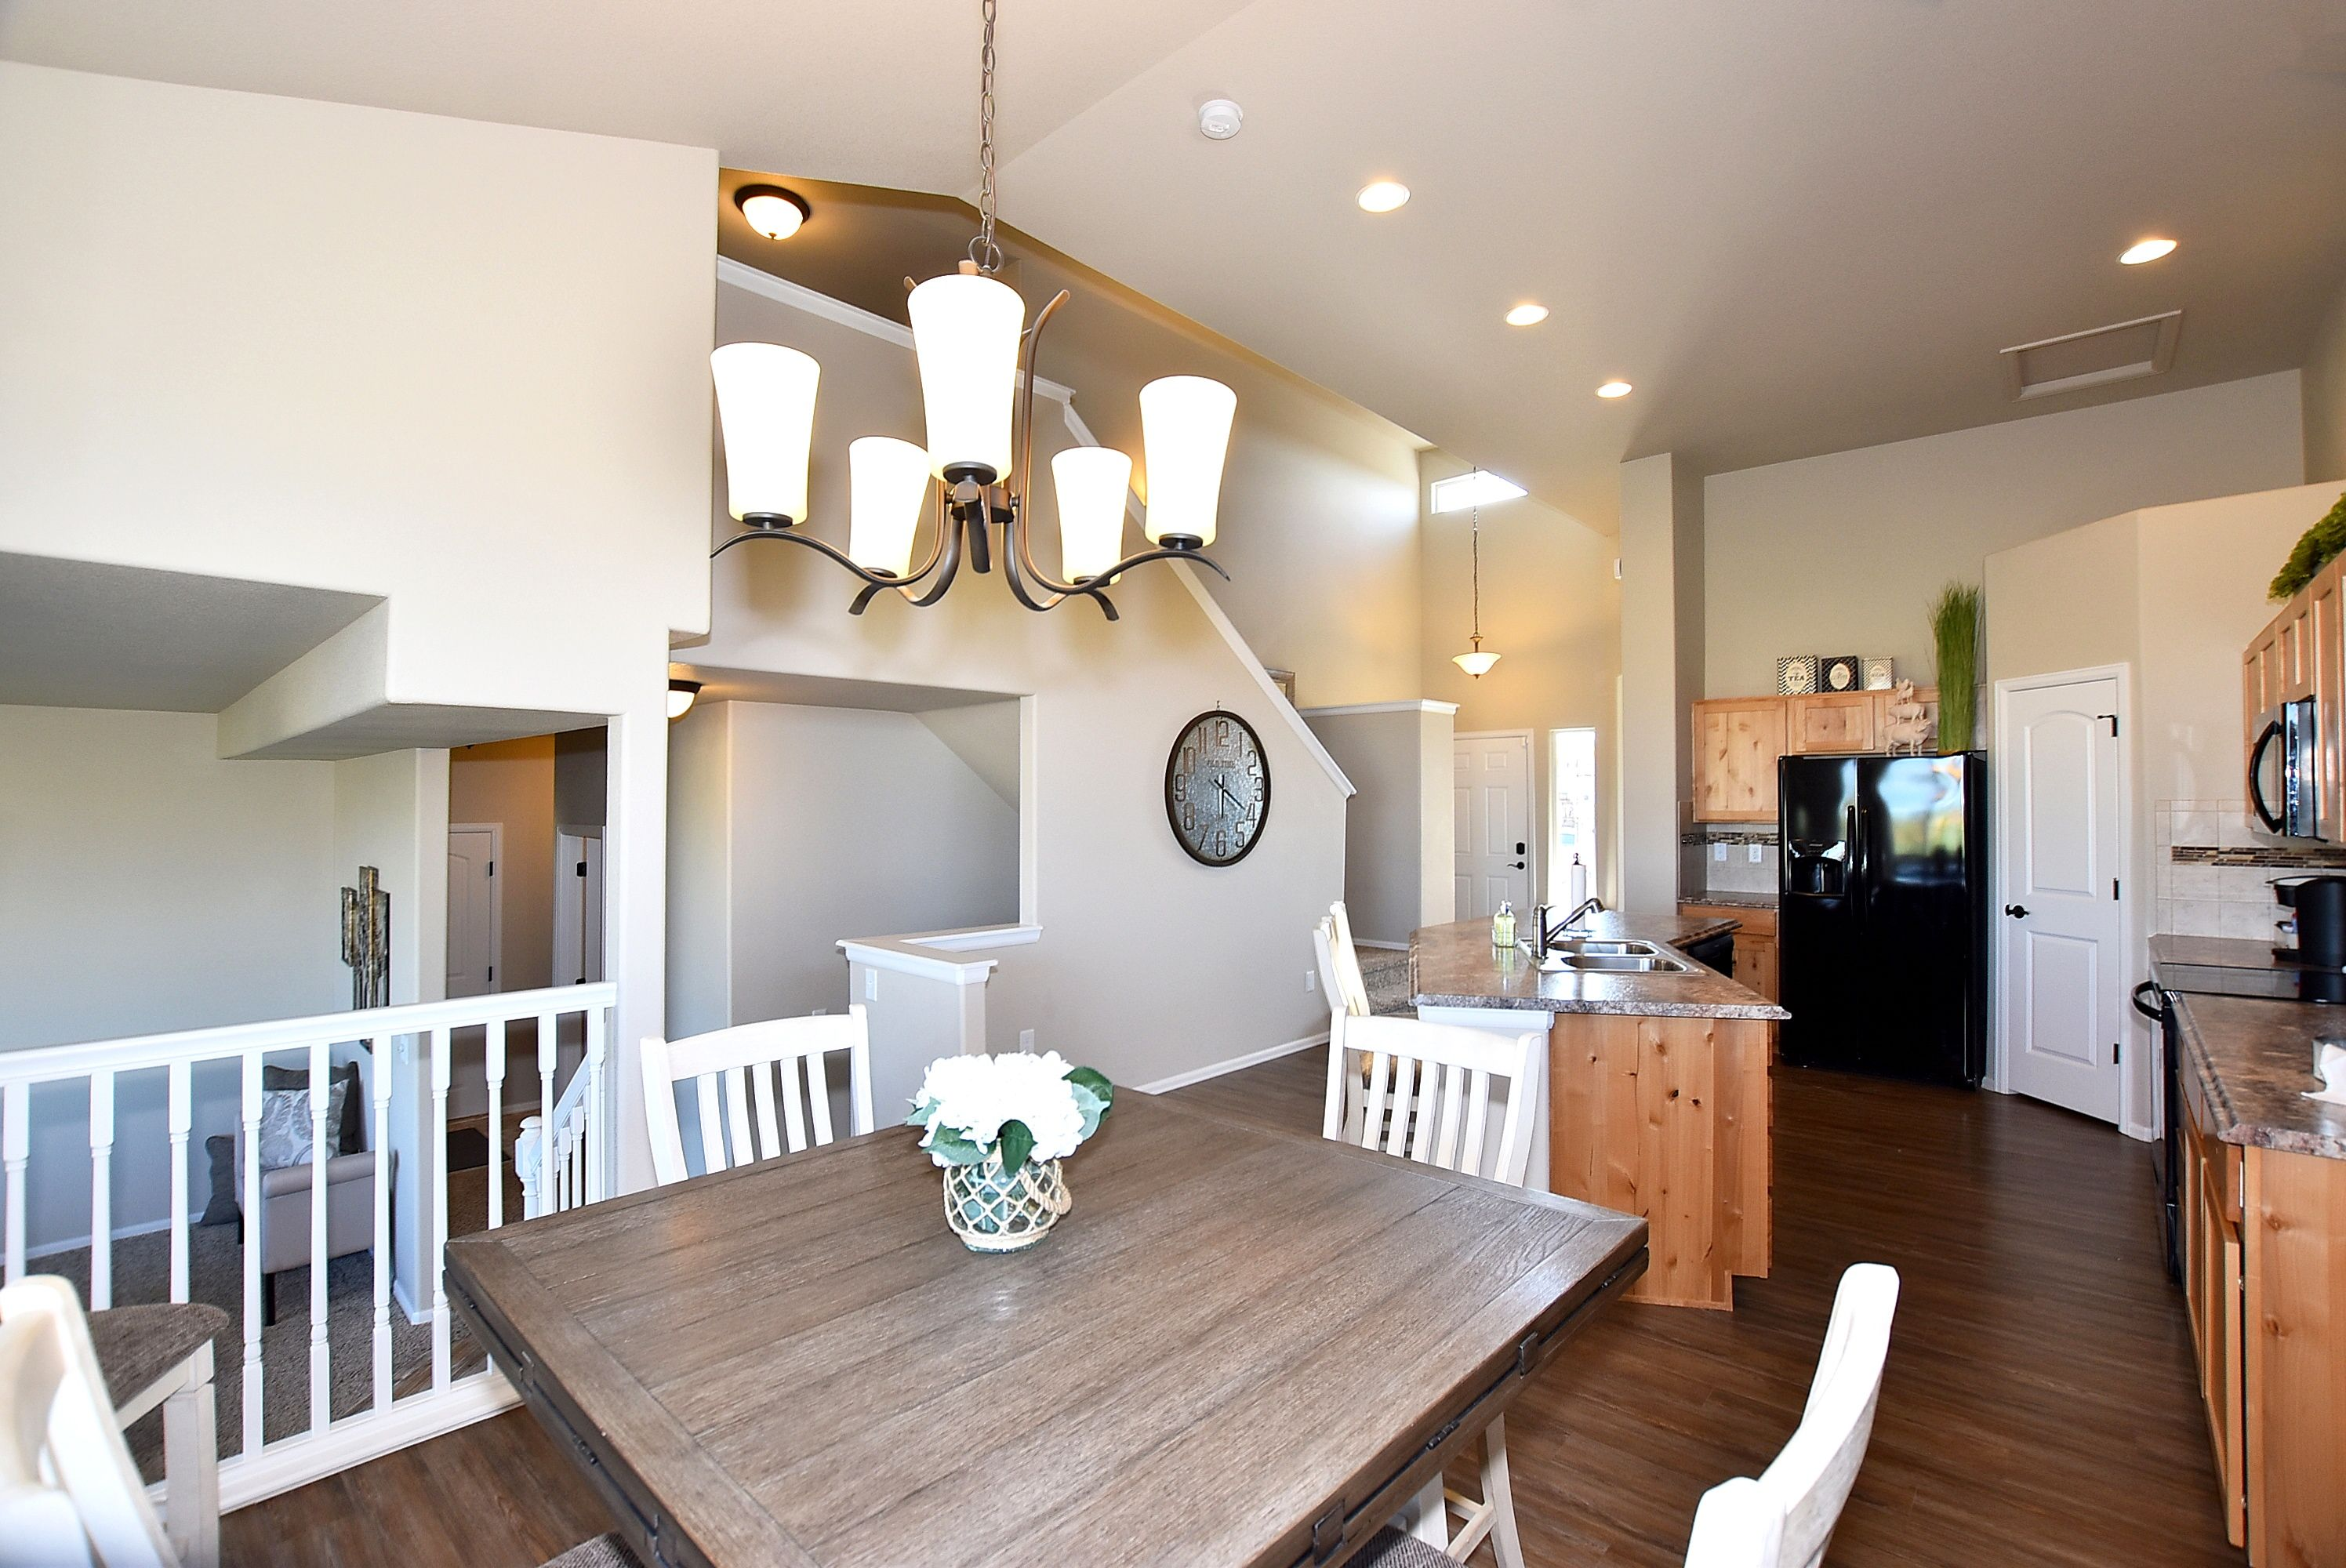 Kitchen featured in the Big Horn By Journey Homes in Greeley, CO